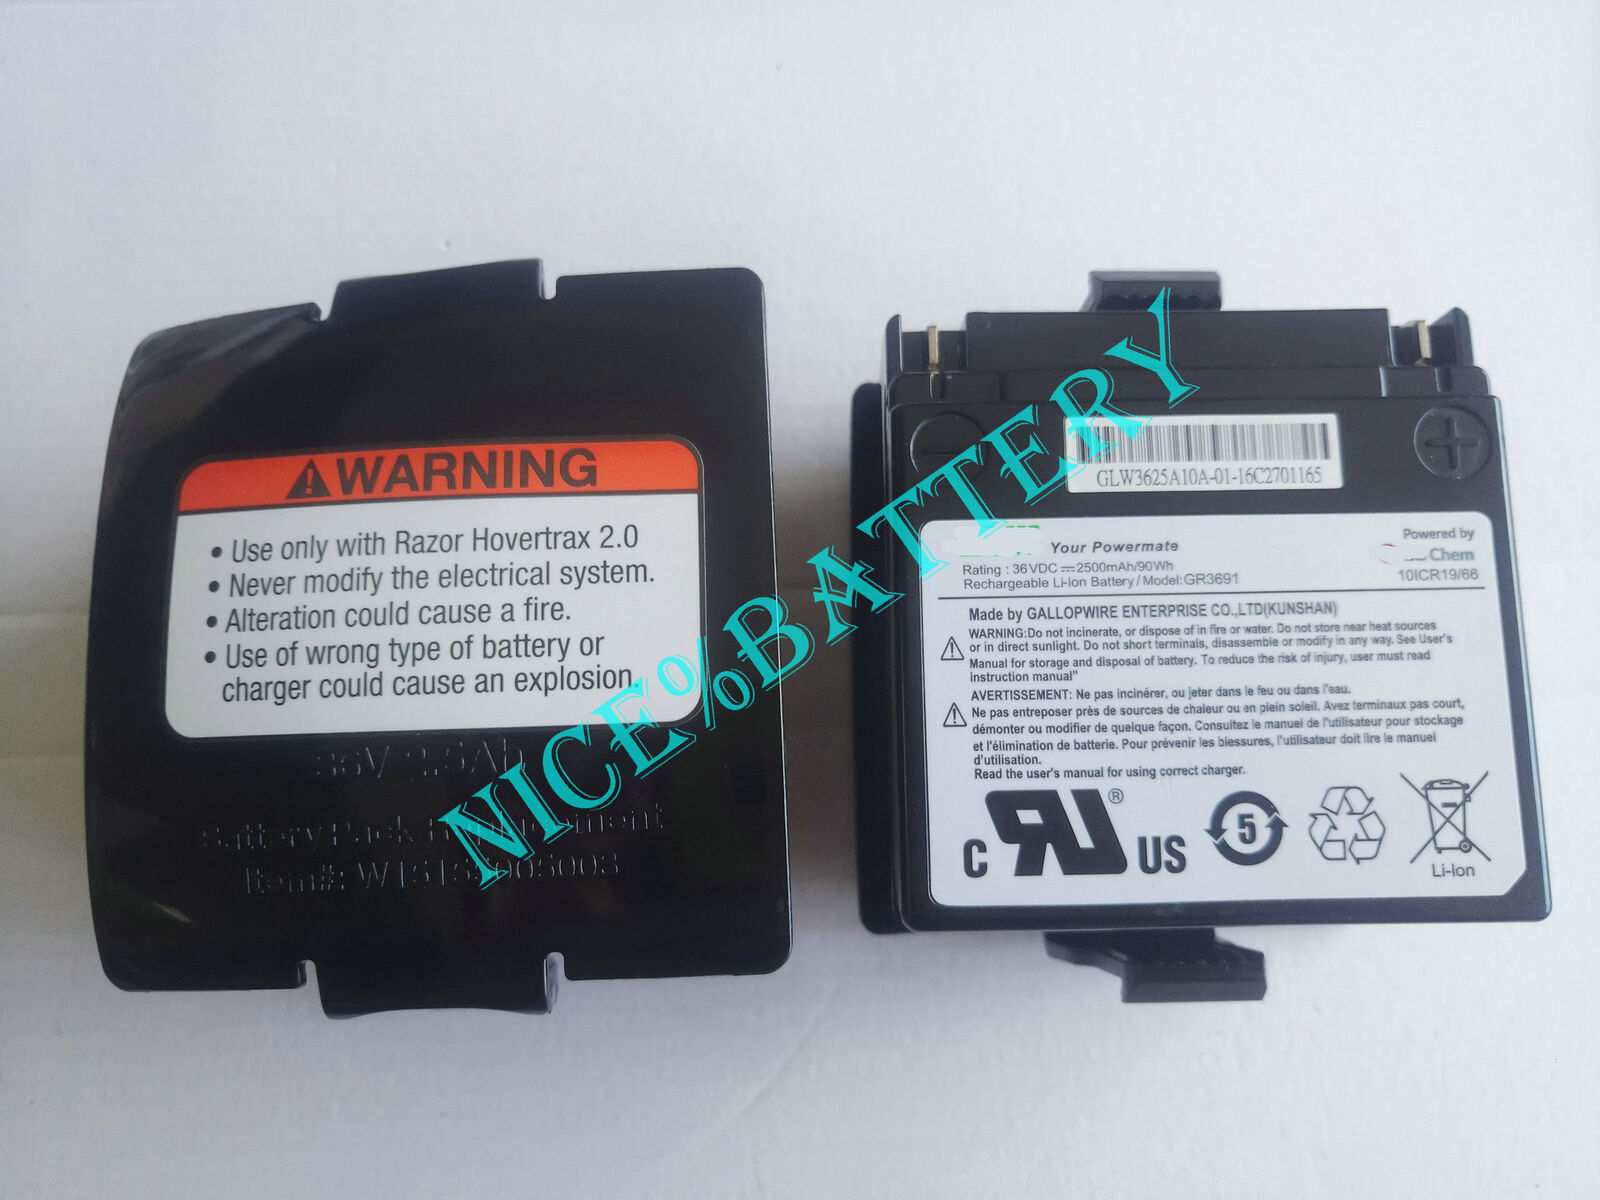 New Genuine GR3691 For GLW LG Razor Hoverderax 2.0 Battery Balance car Scooters